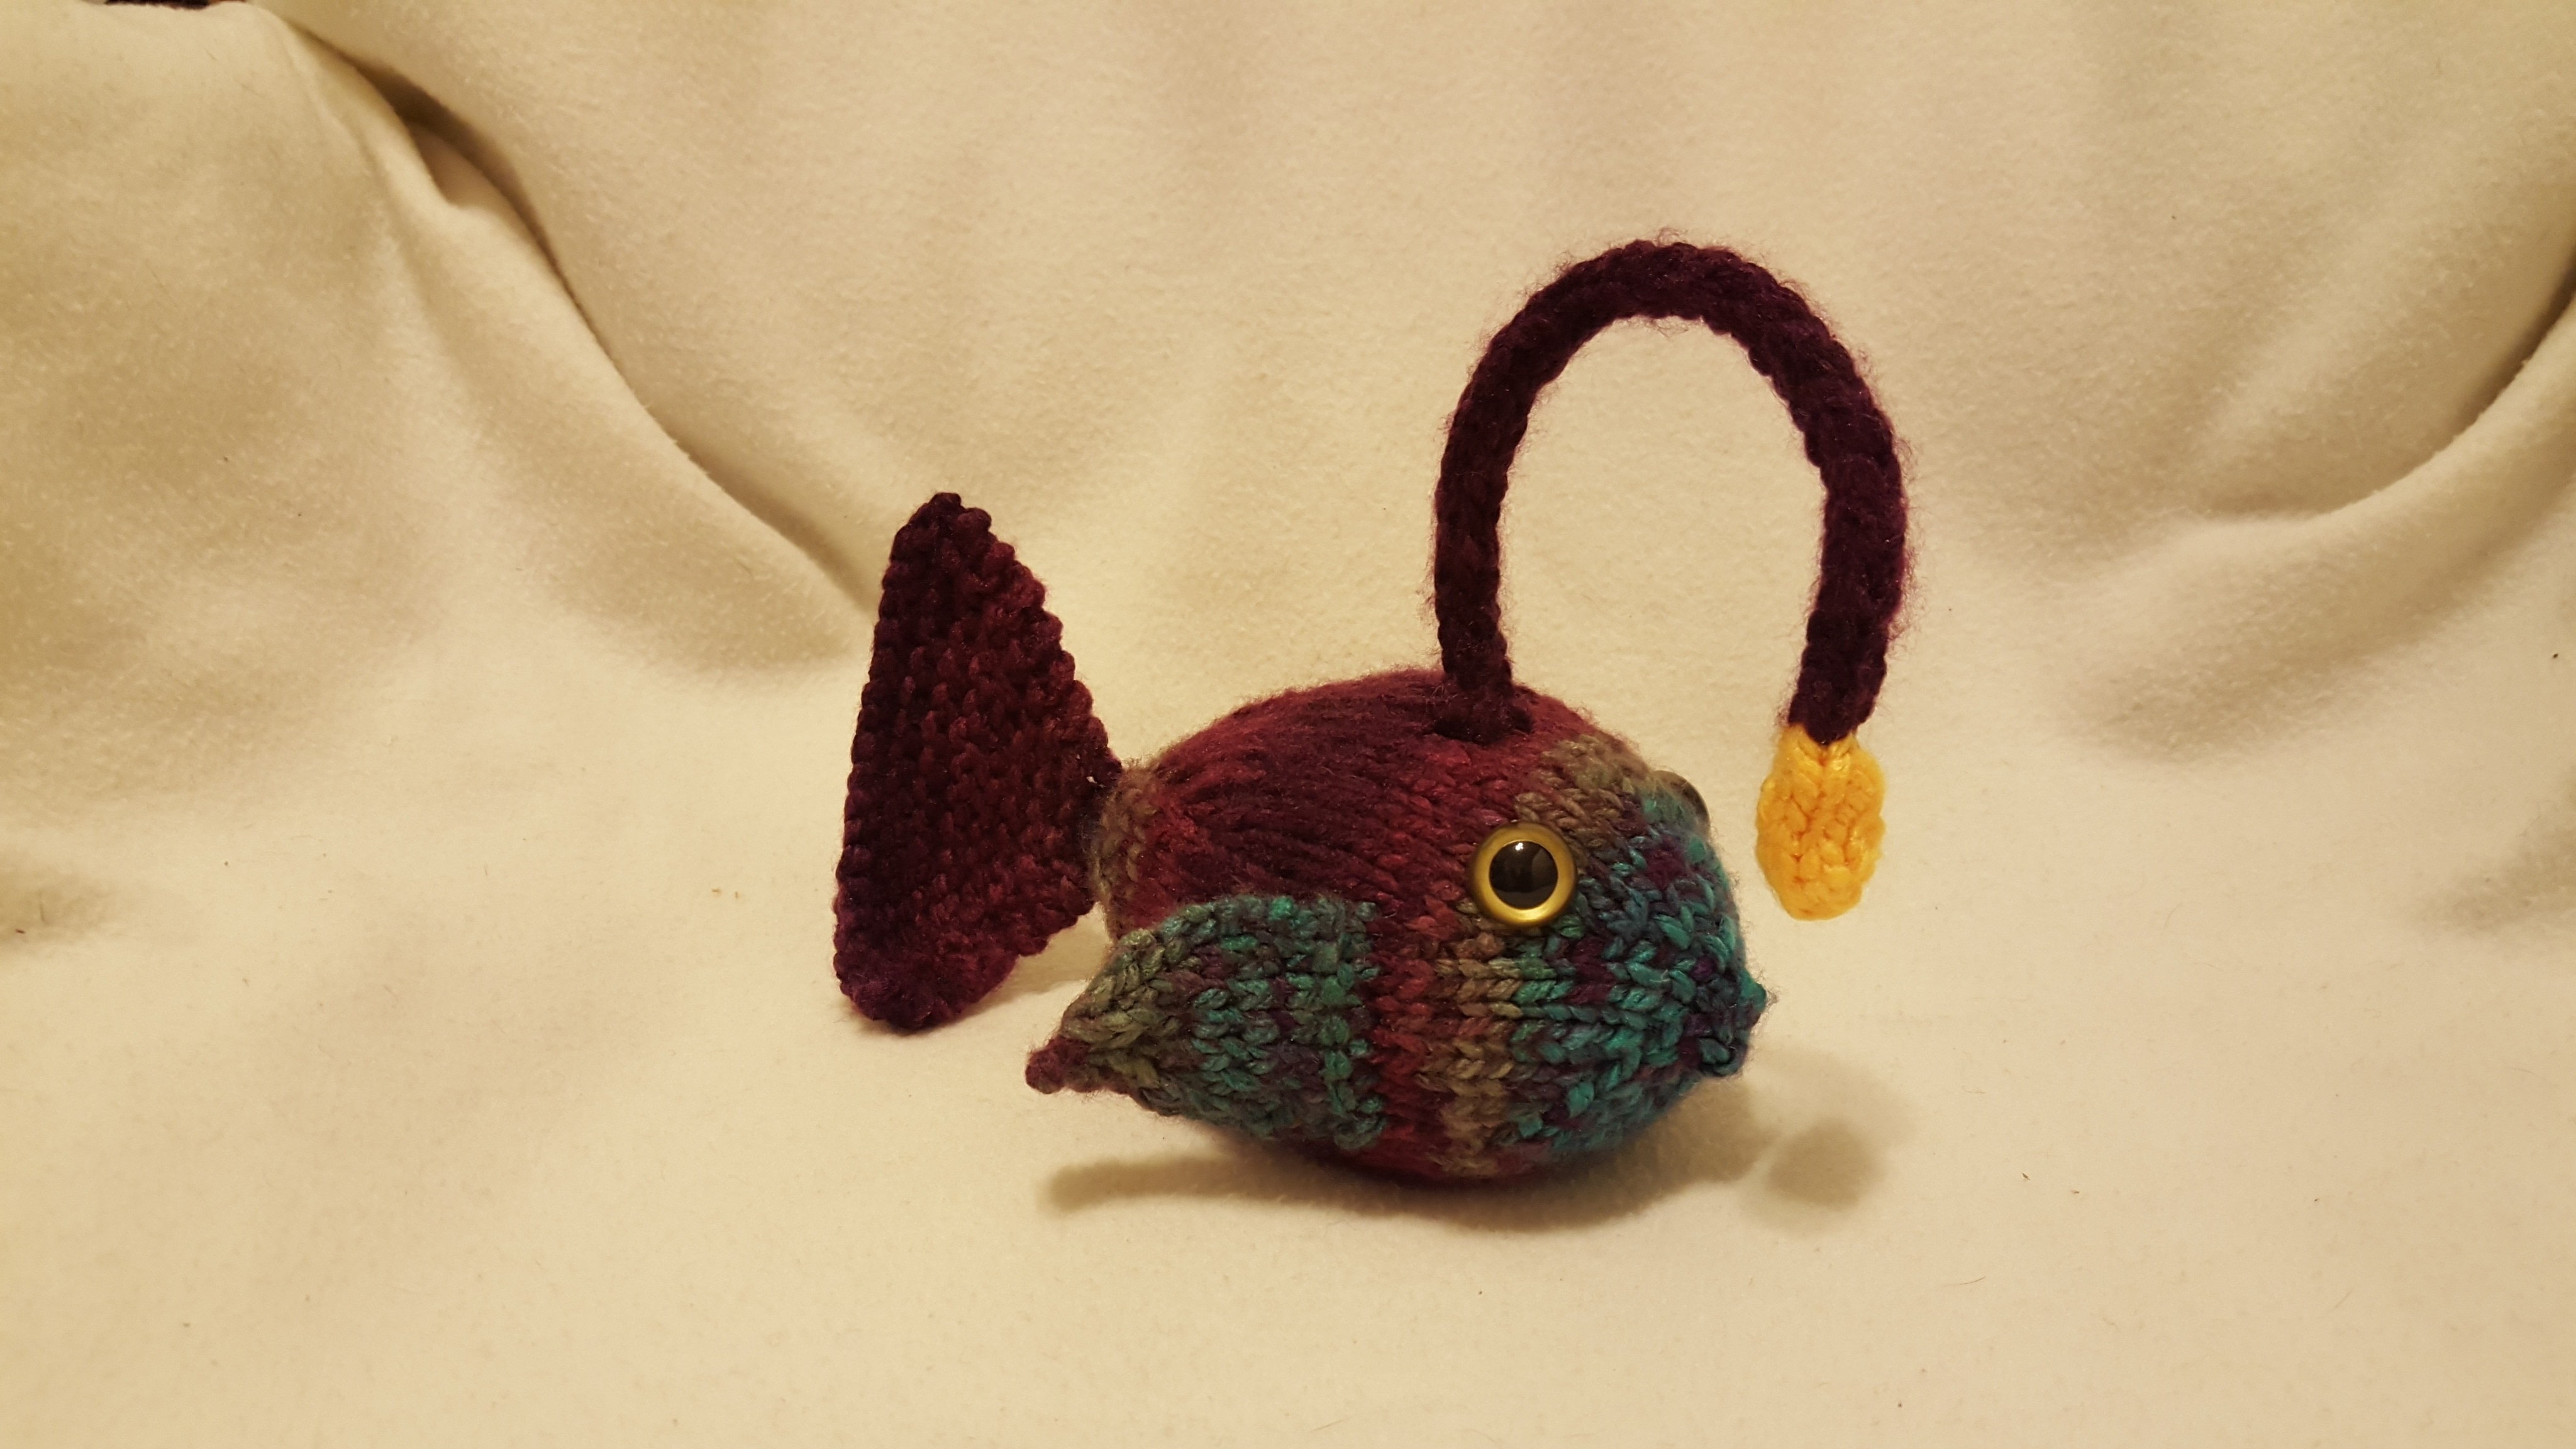 Knitted angler fish plush a fish plushie yarncraft on for Angler fish toy